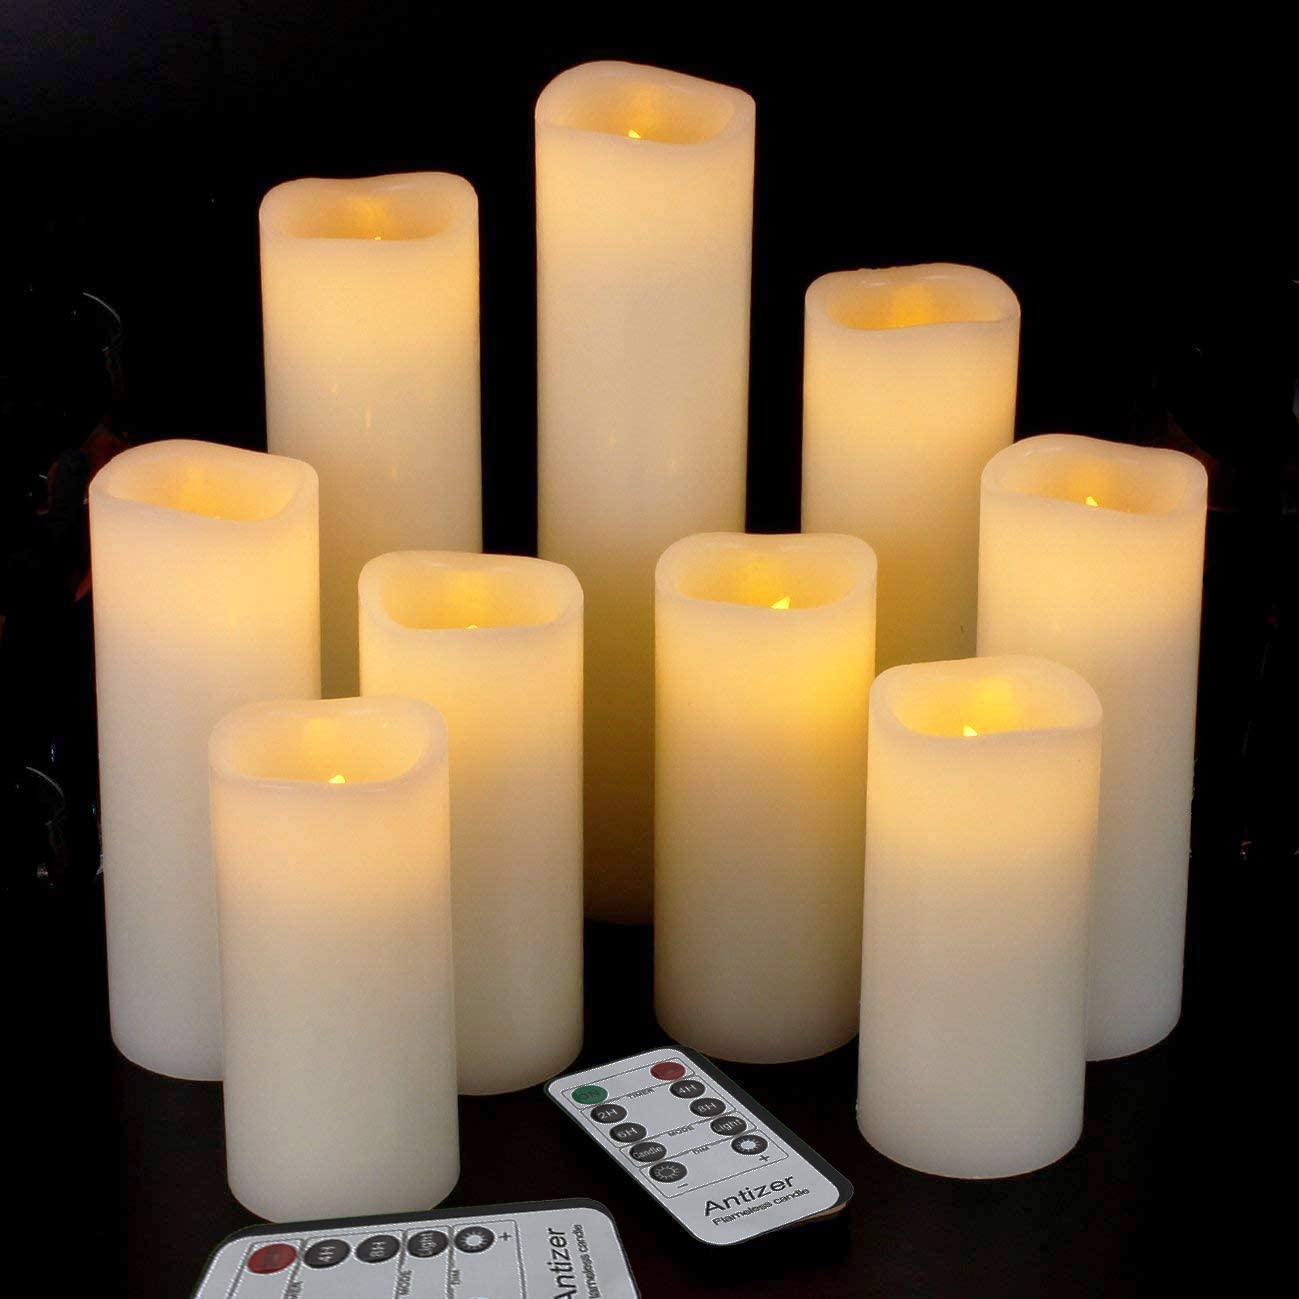 Antizer Flameless Candles Led Candles Pack of 9